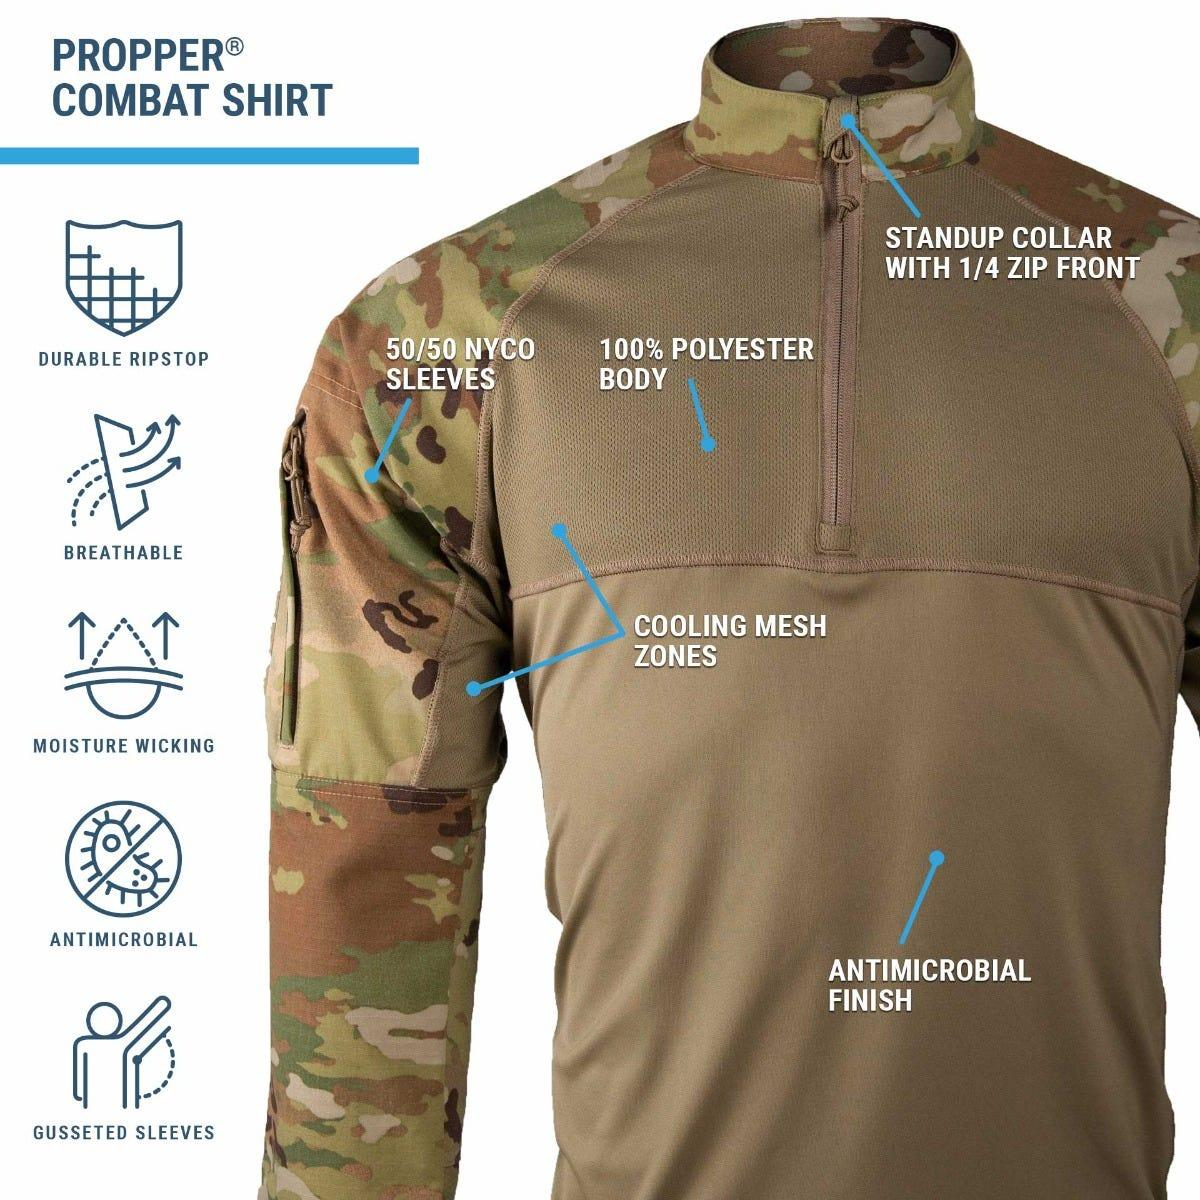 OCP Combat shirt with scorpion camouflage sleeves and cool mesh tan body offers stand up collar, reinforced elbows and pockets.